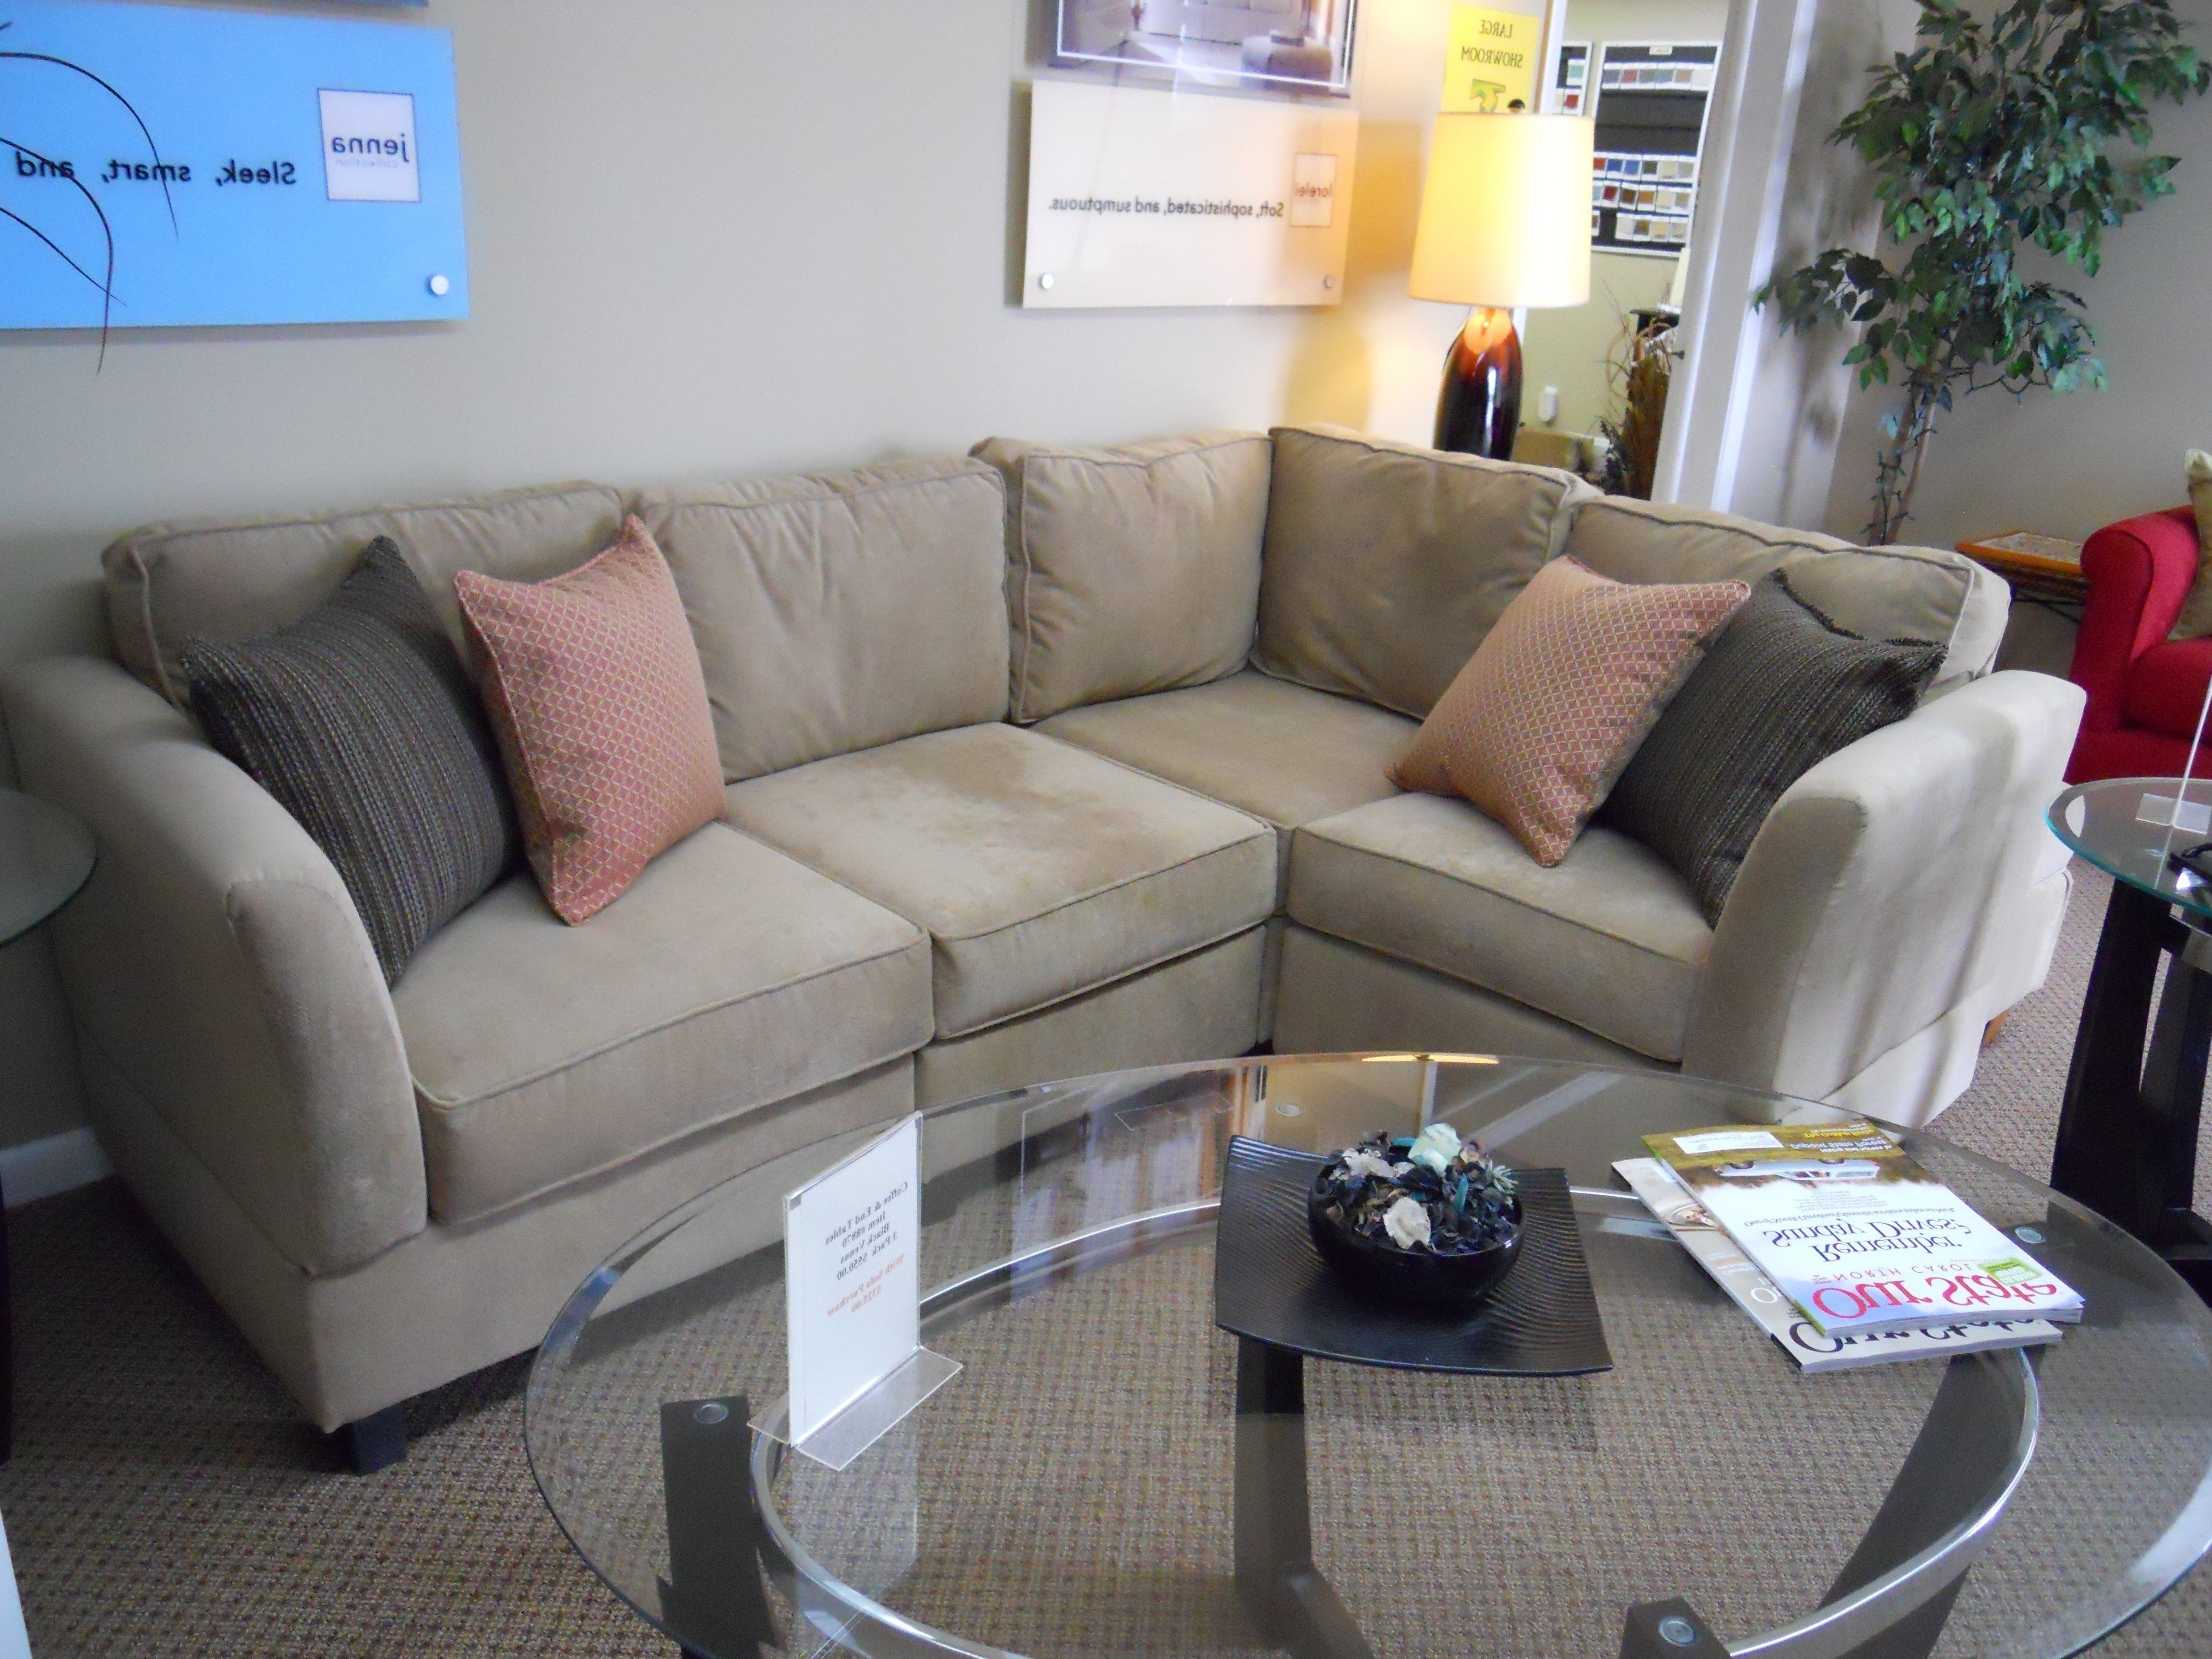 Widely Used Reclining Sectional Sofas For Small Spaces W Script With Small For Sectional Sofas For Small Areas (View 14 of 15)